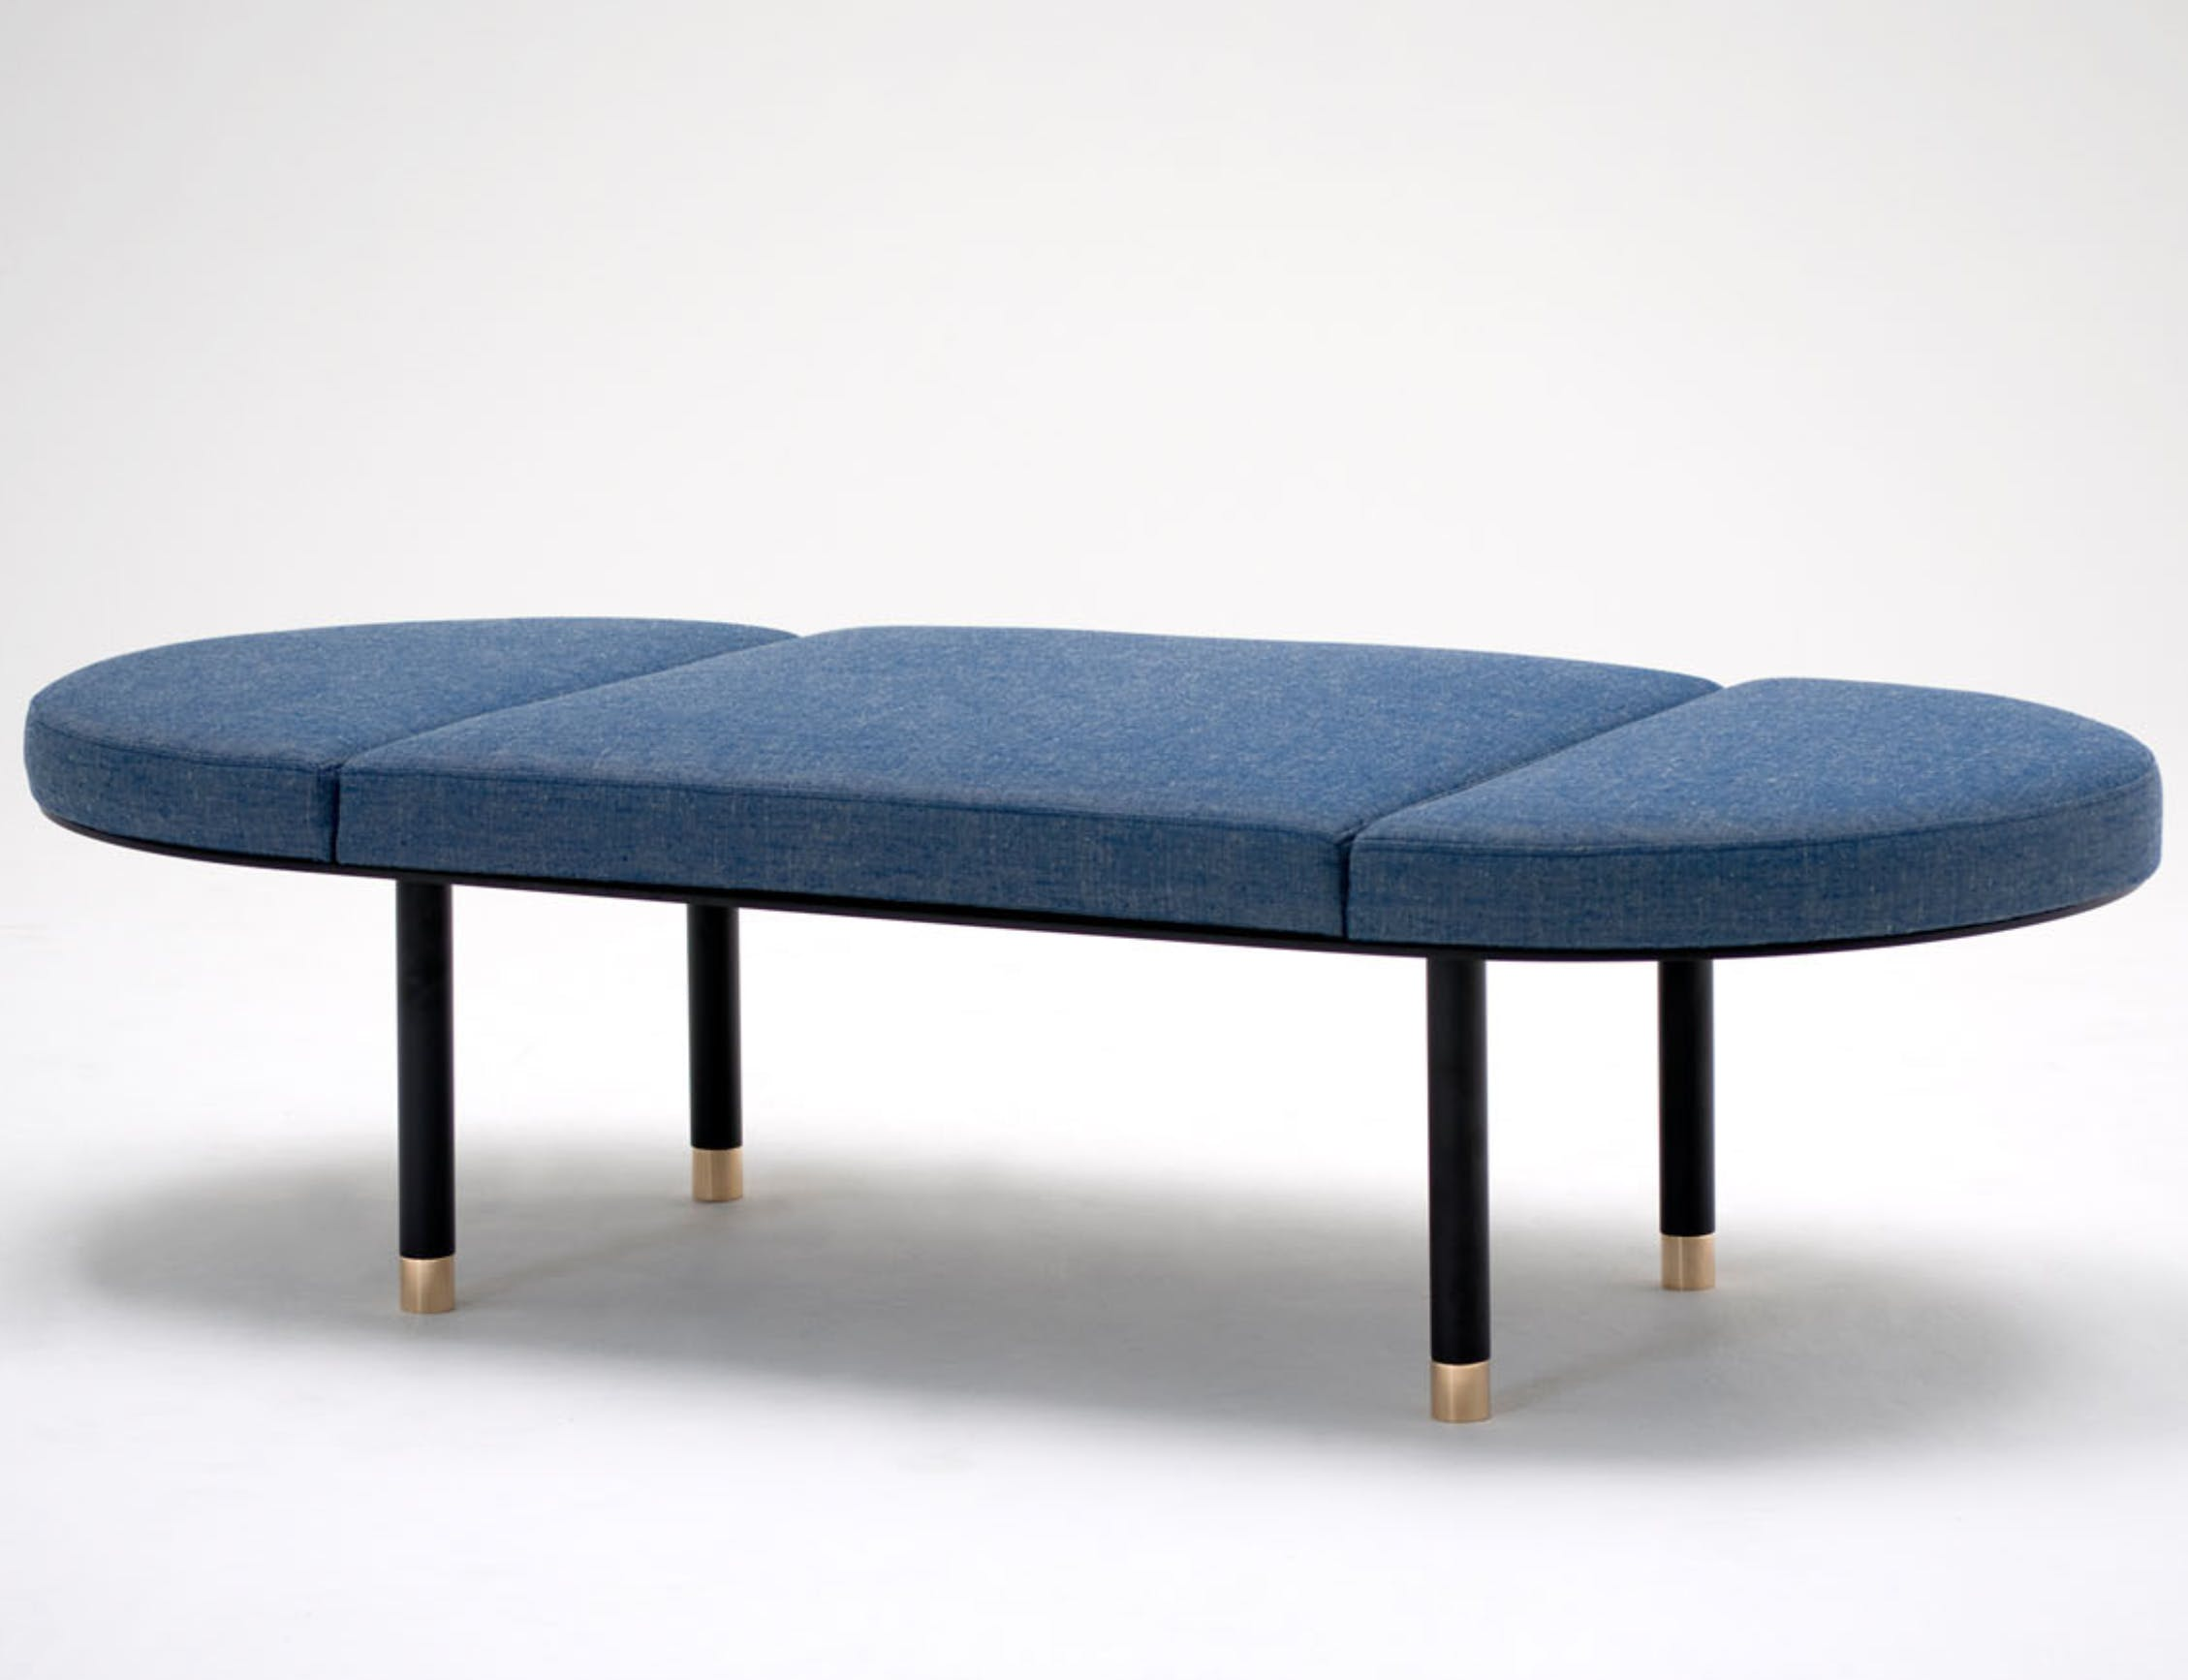 Phase Design Pill Bench Angle Haute Living 190108 210425